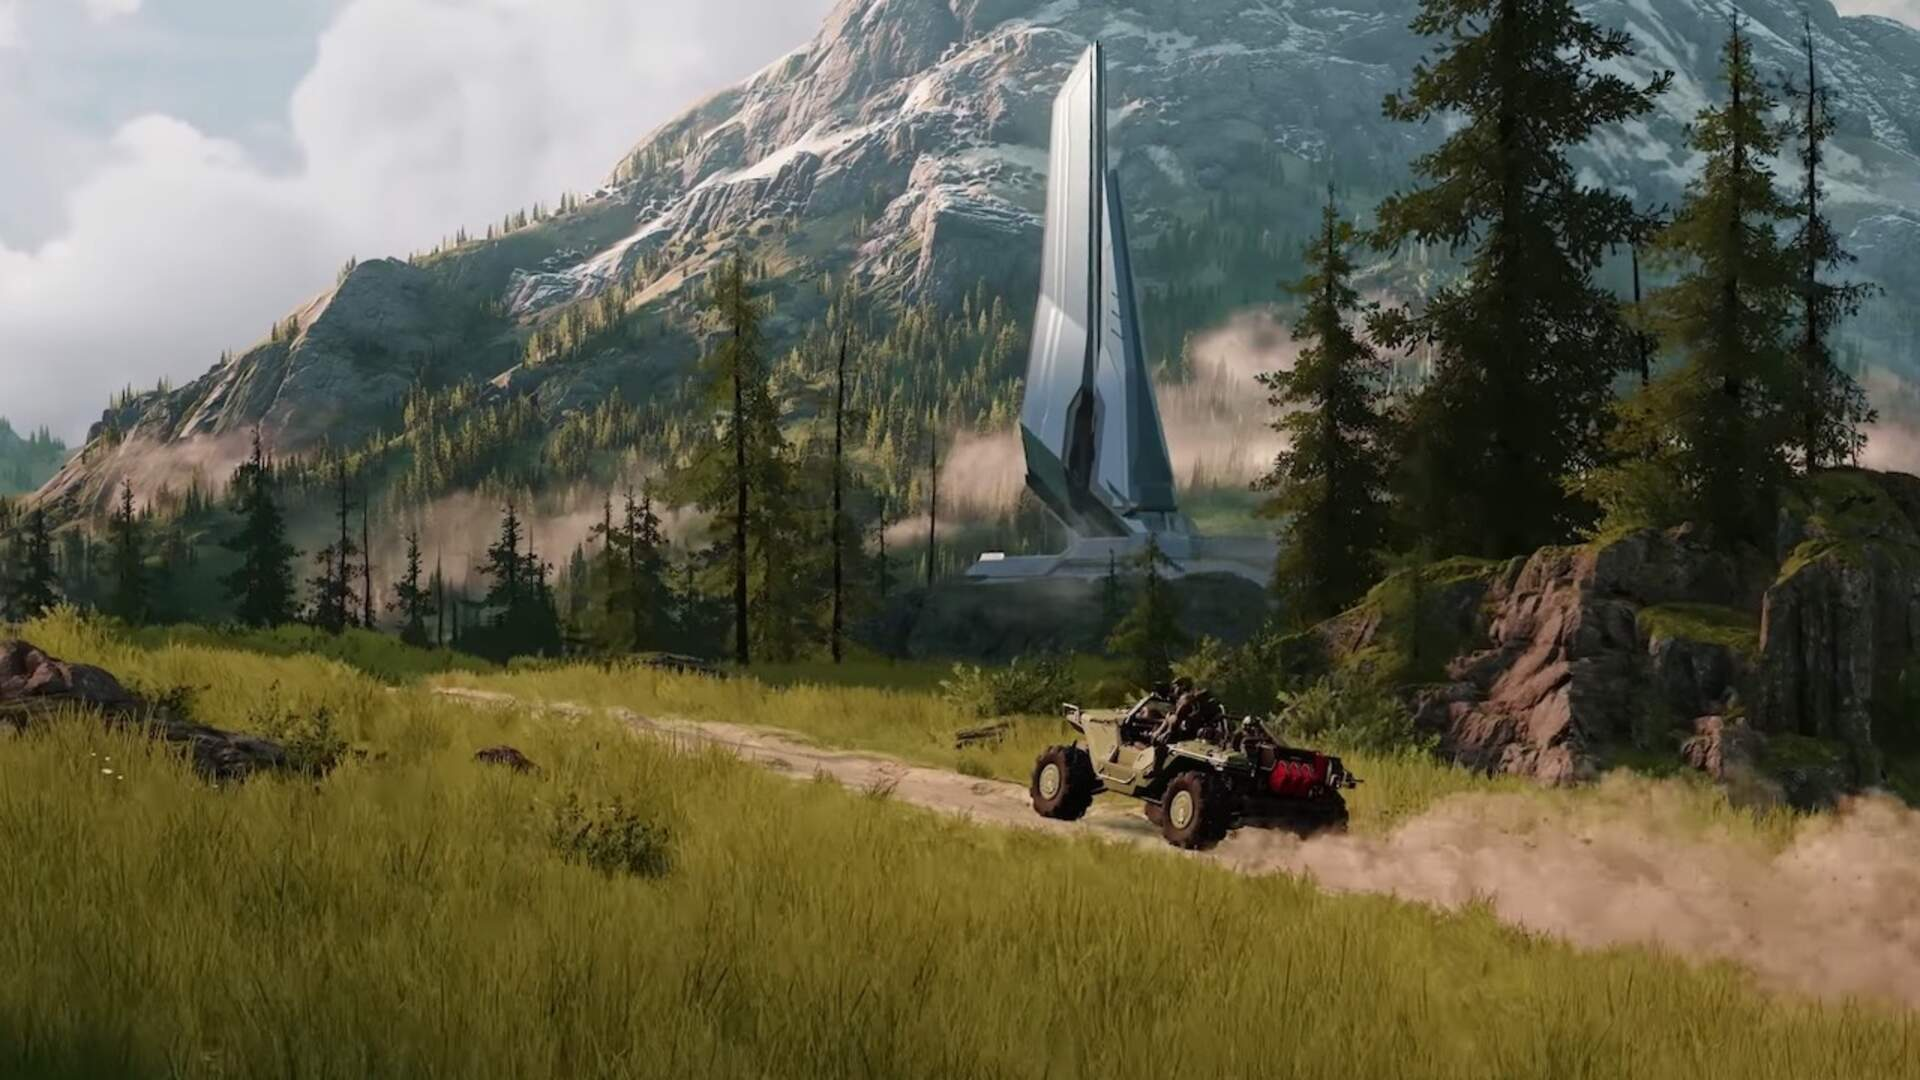 Halo Infinite Field Recordings Give Us a Peek at Its Land and Air Vehicles